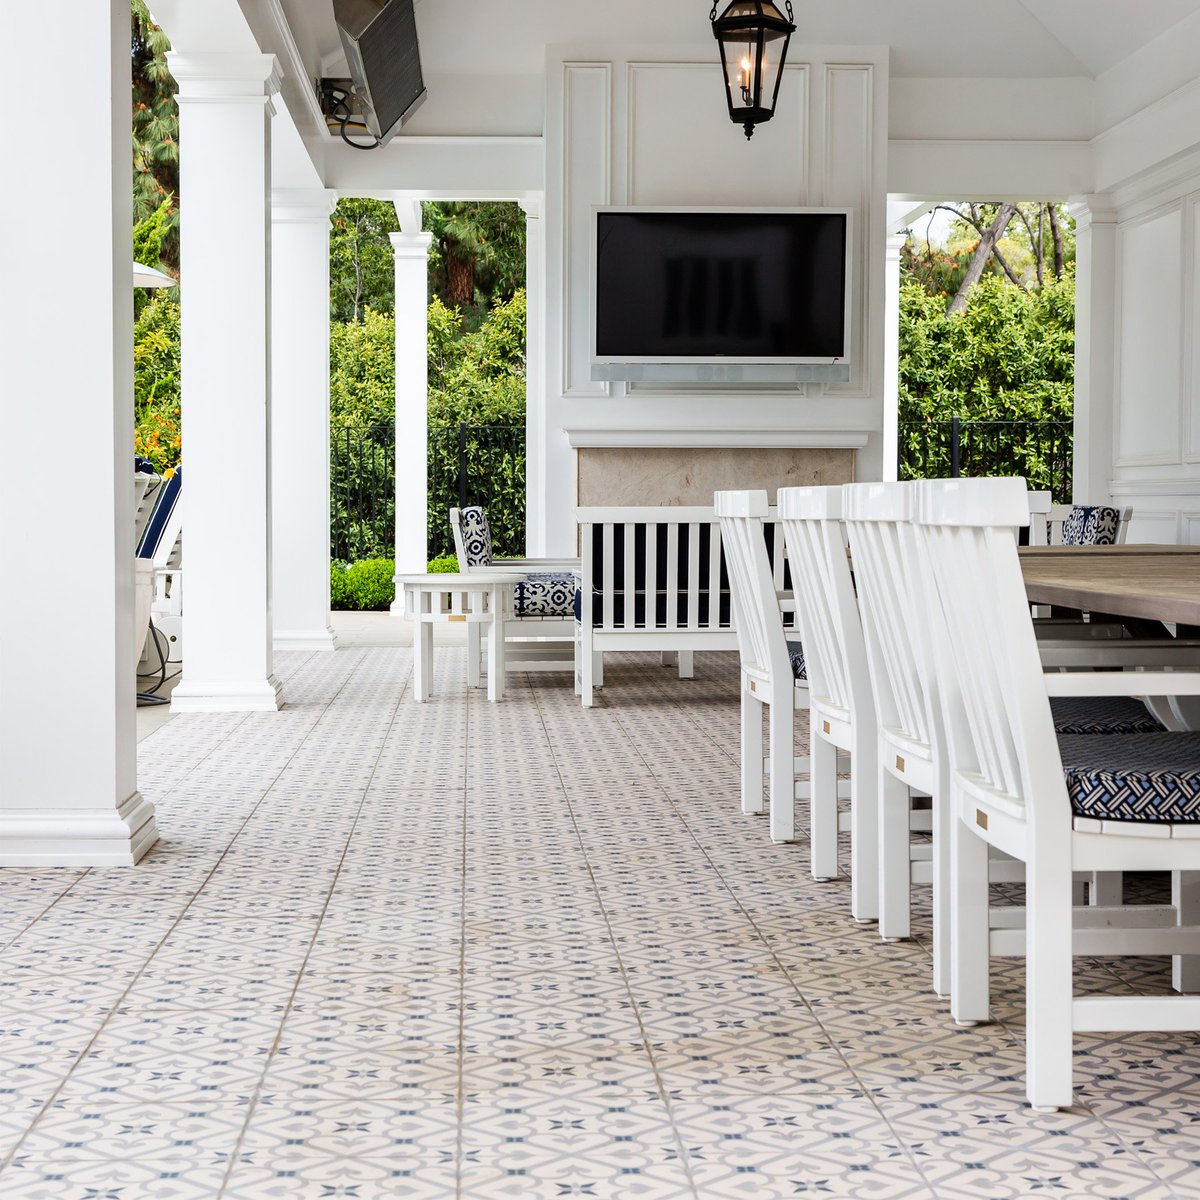 Charmful Mission Tile West On Is What Do You Have Plannedfor Mission Tile West On Is What Do You Have Mission Tile West Owner Mission Tile West Newport Beach houzz-03 Mission Tile West